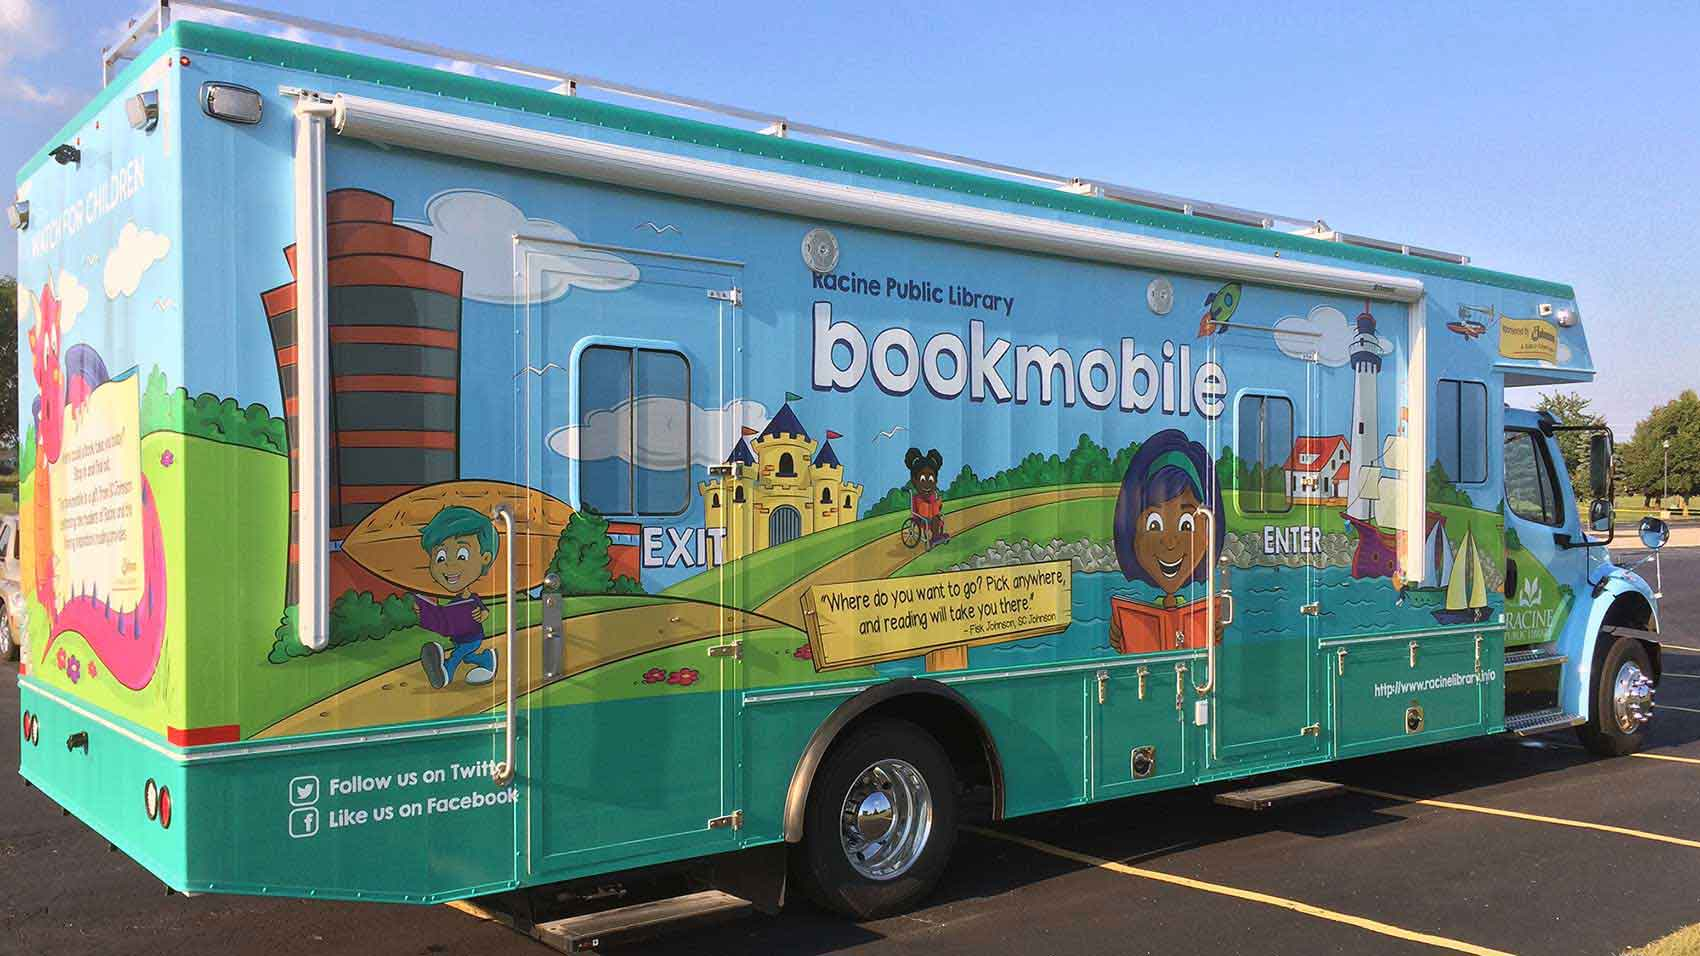 Racine Public Library Bookmobile